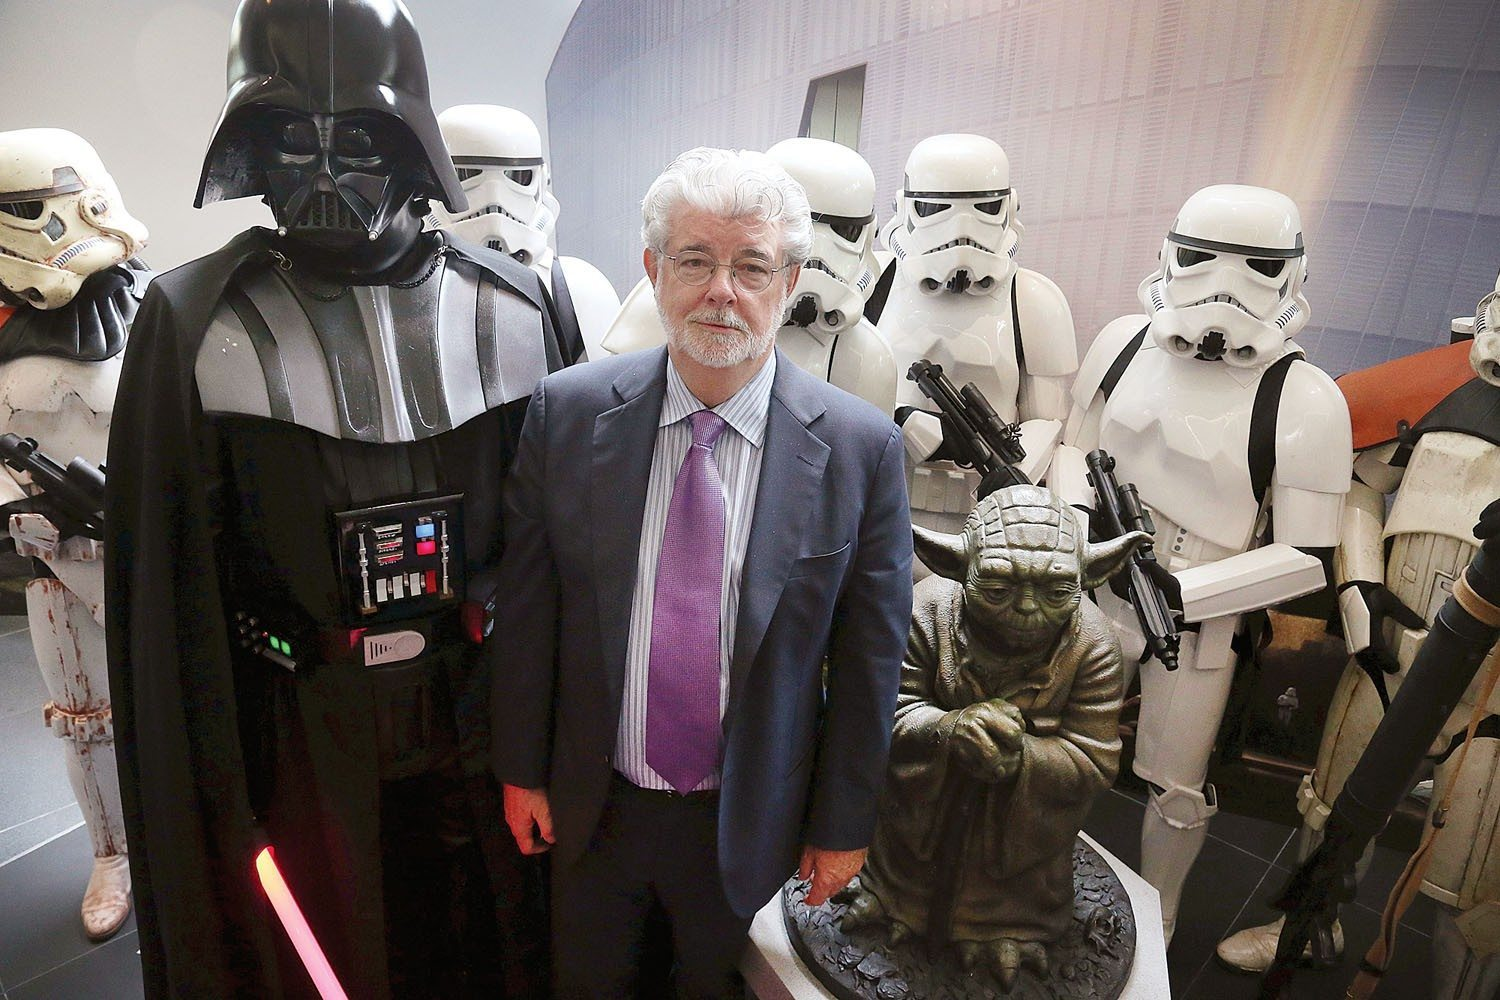 City officials said Tuesday that George Lucas will not build his museum in San Francisco, ending months of speculation as to where the museum will open. (S.F. Examiner file photo)